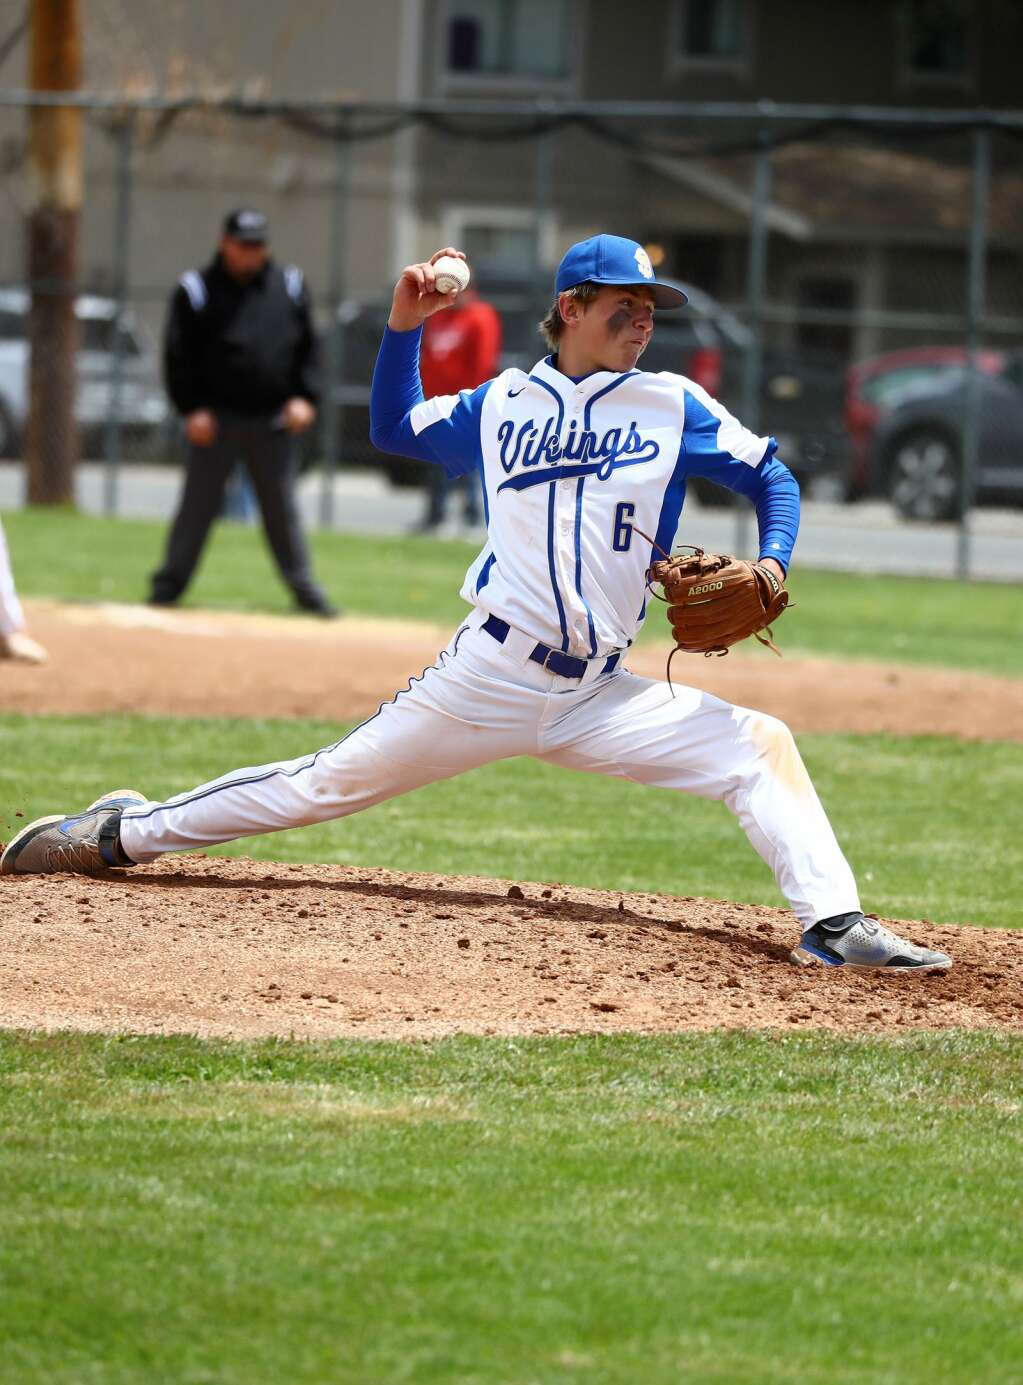 Andrew Lehmann delivers a pitch against Truckee.